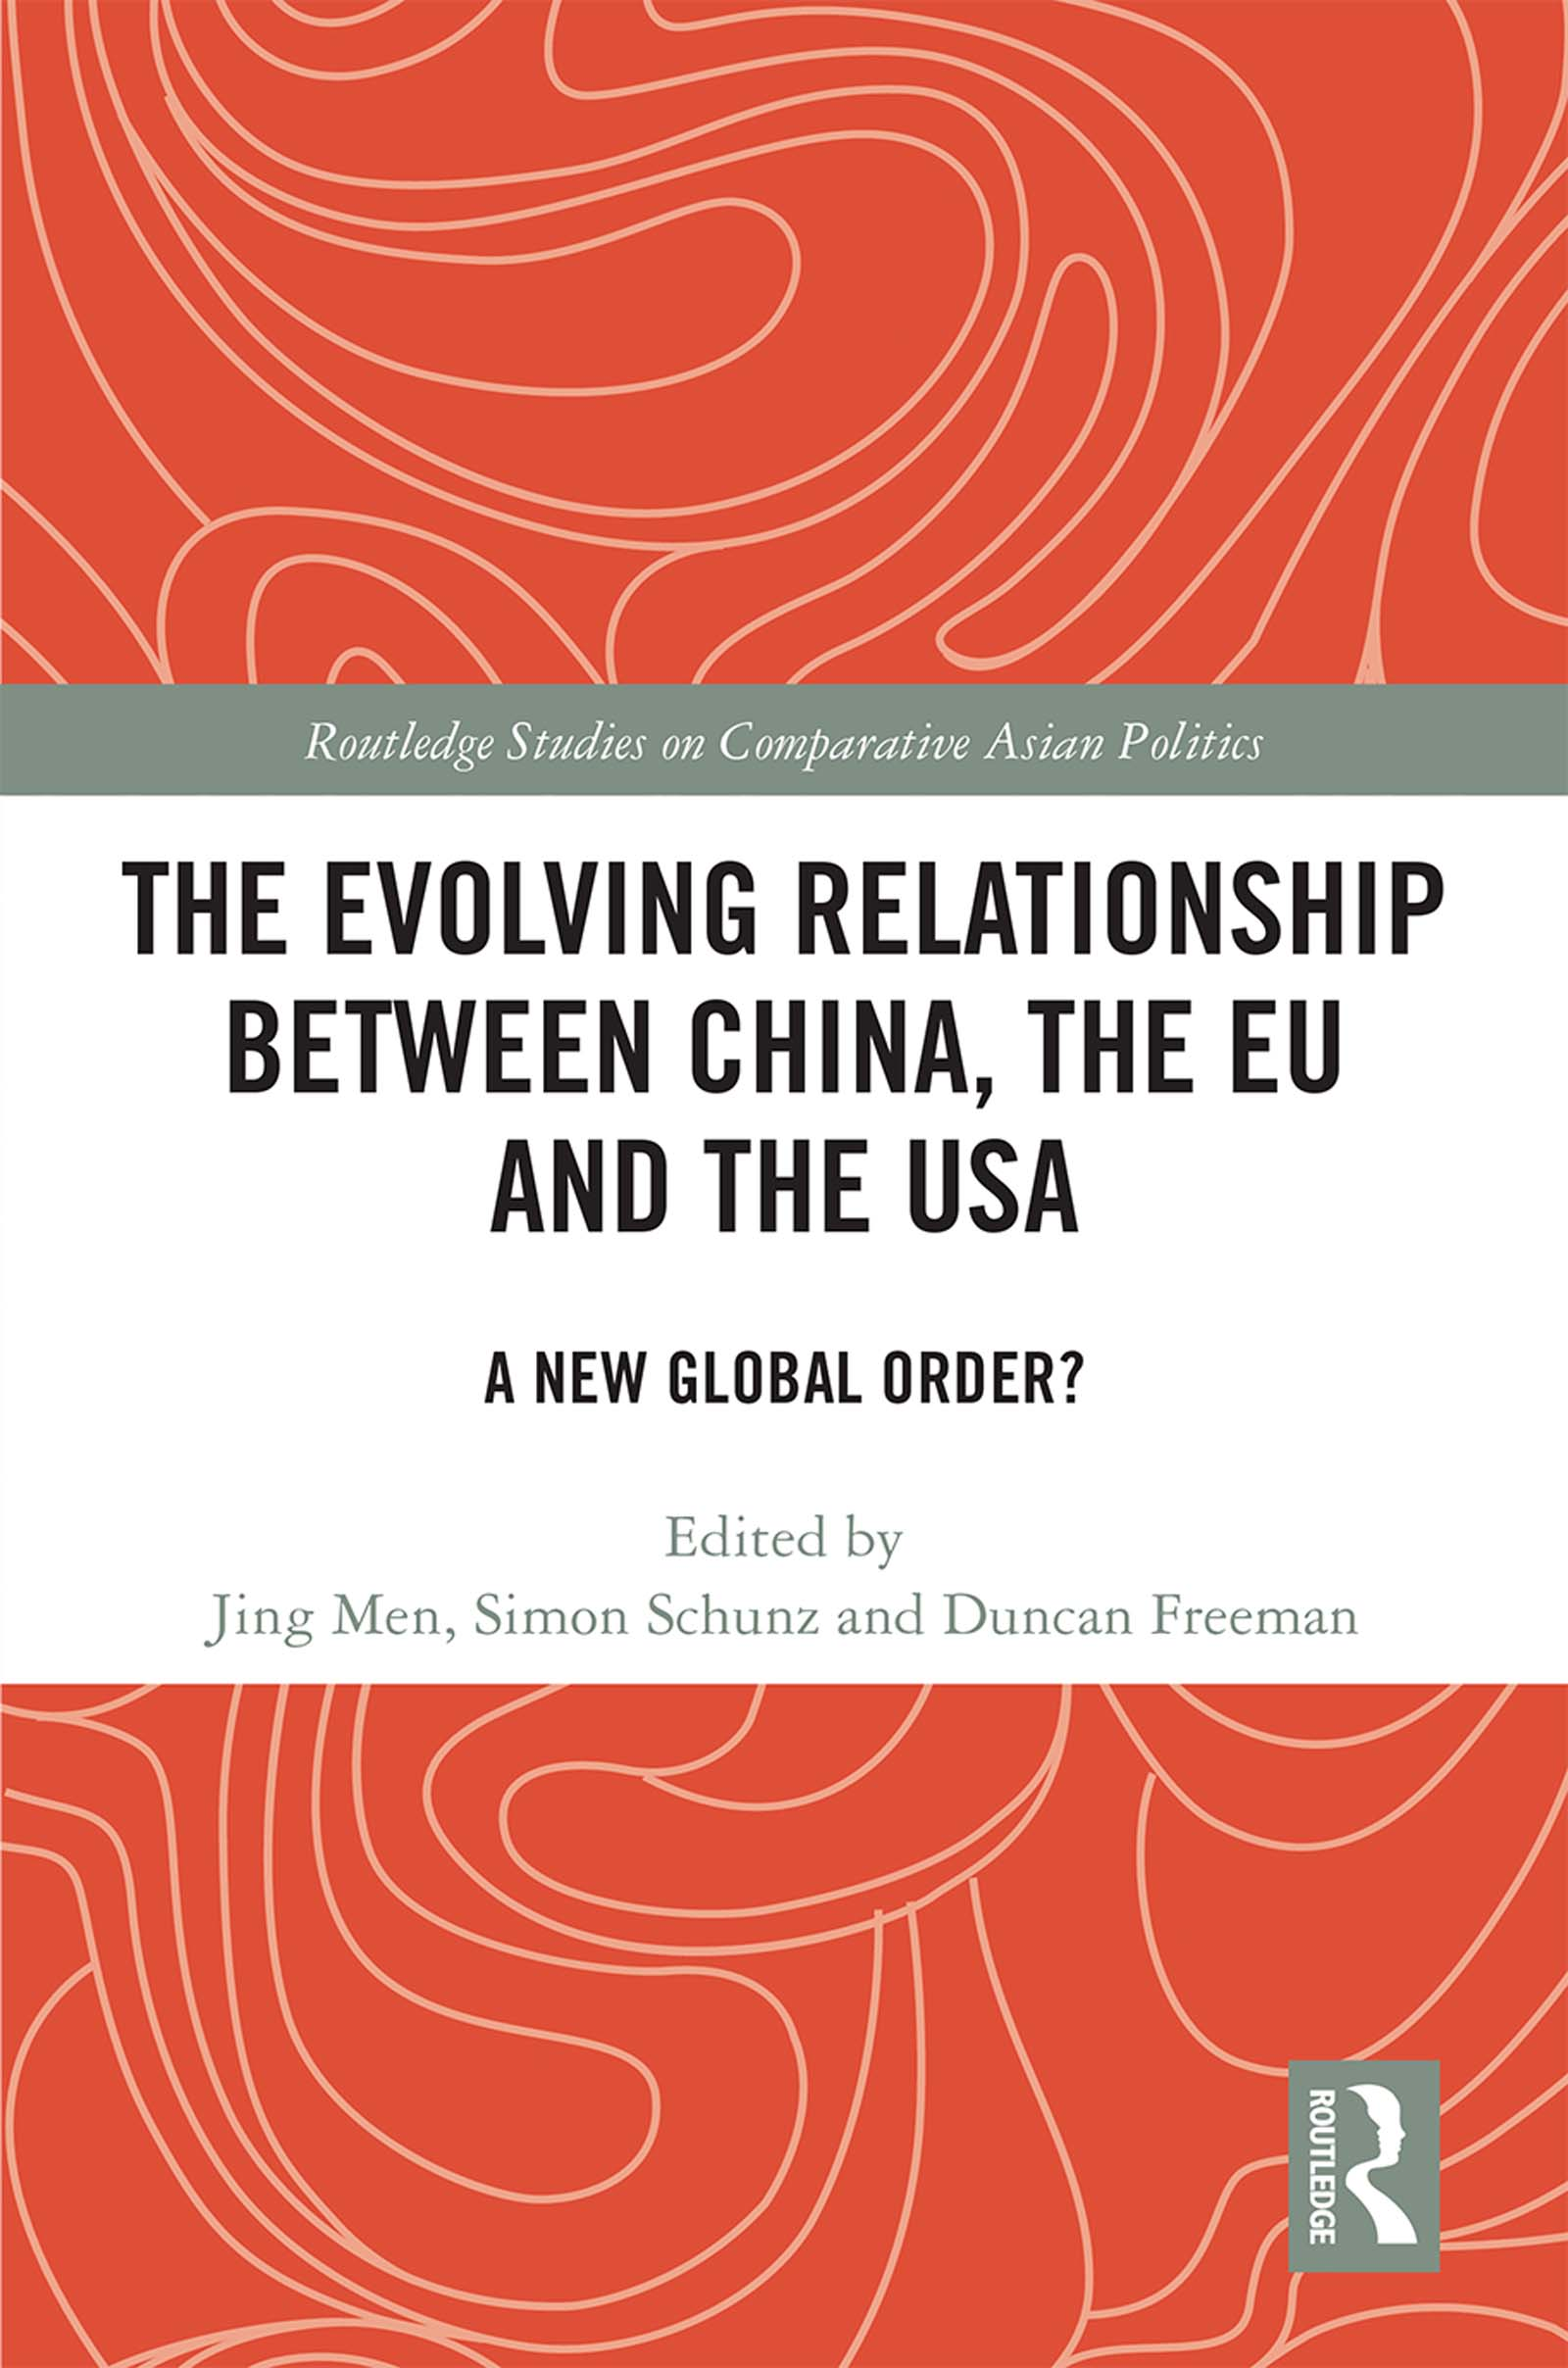 The Evolving Relationship between China, the EU and the USA: A New Global Order? book cover